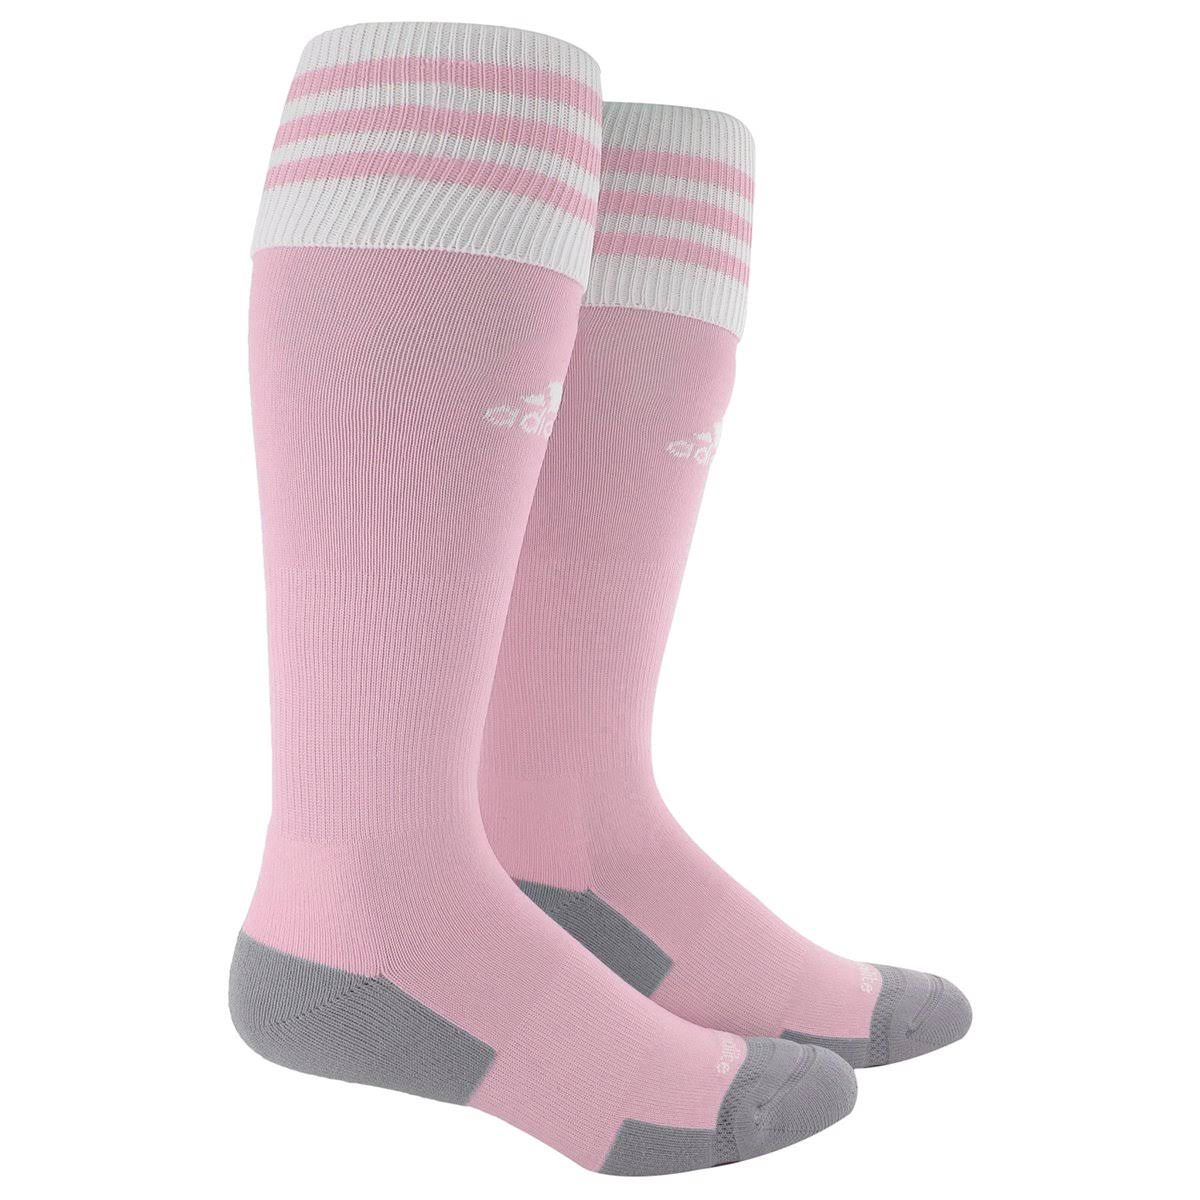 Adidas Copa Zone Cushion II Socks - Pink